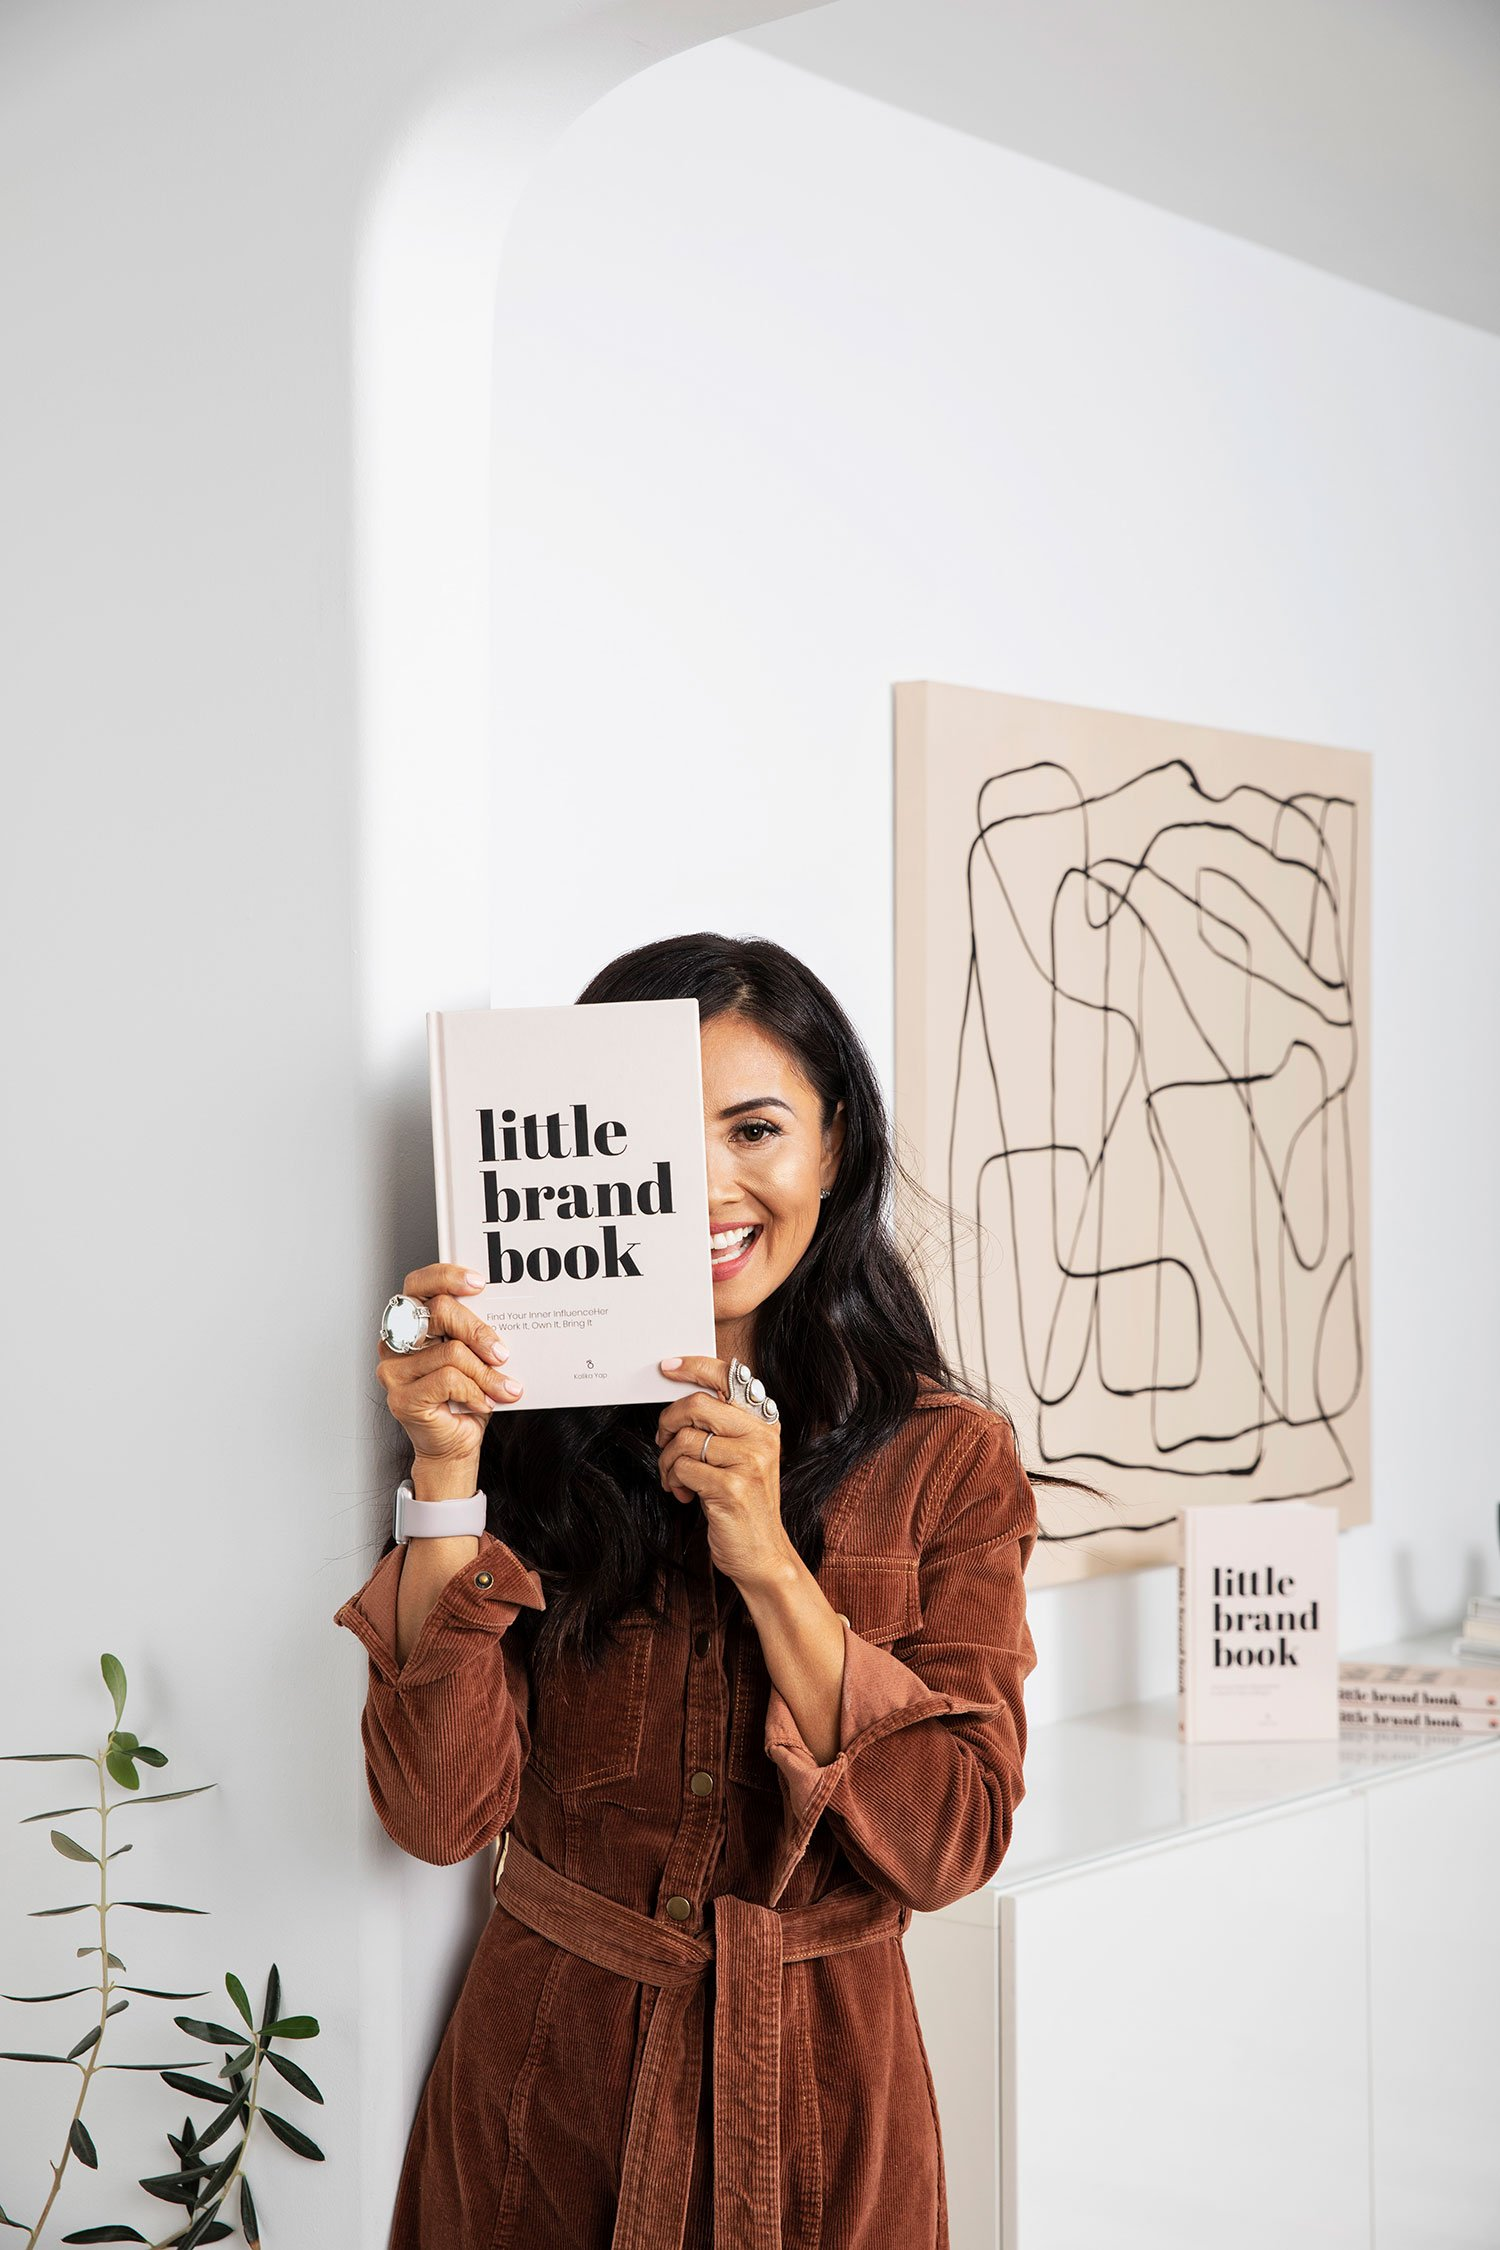 Learn branding techniques with little brand book - Kalika Yap